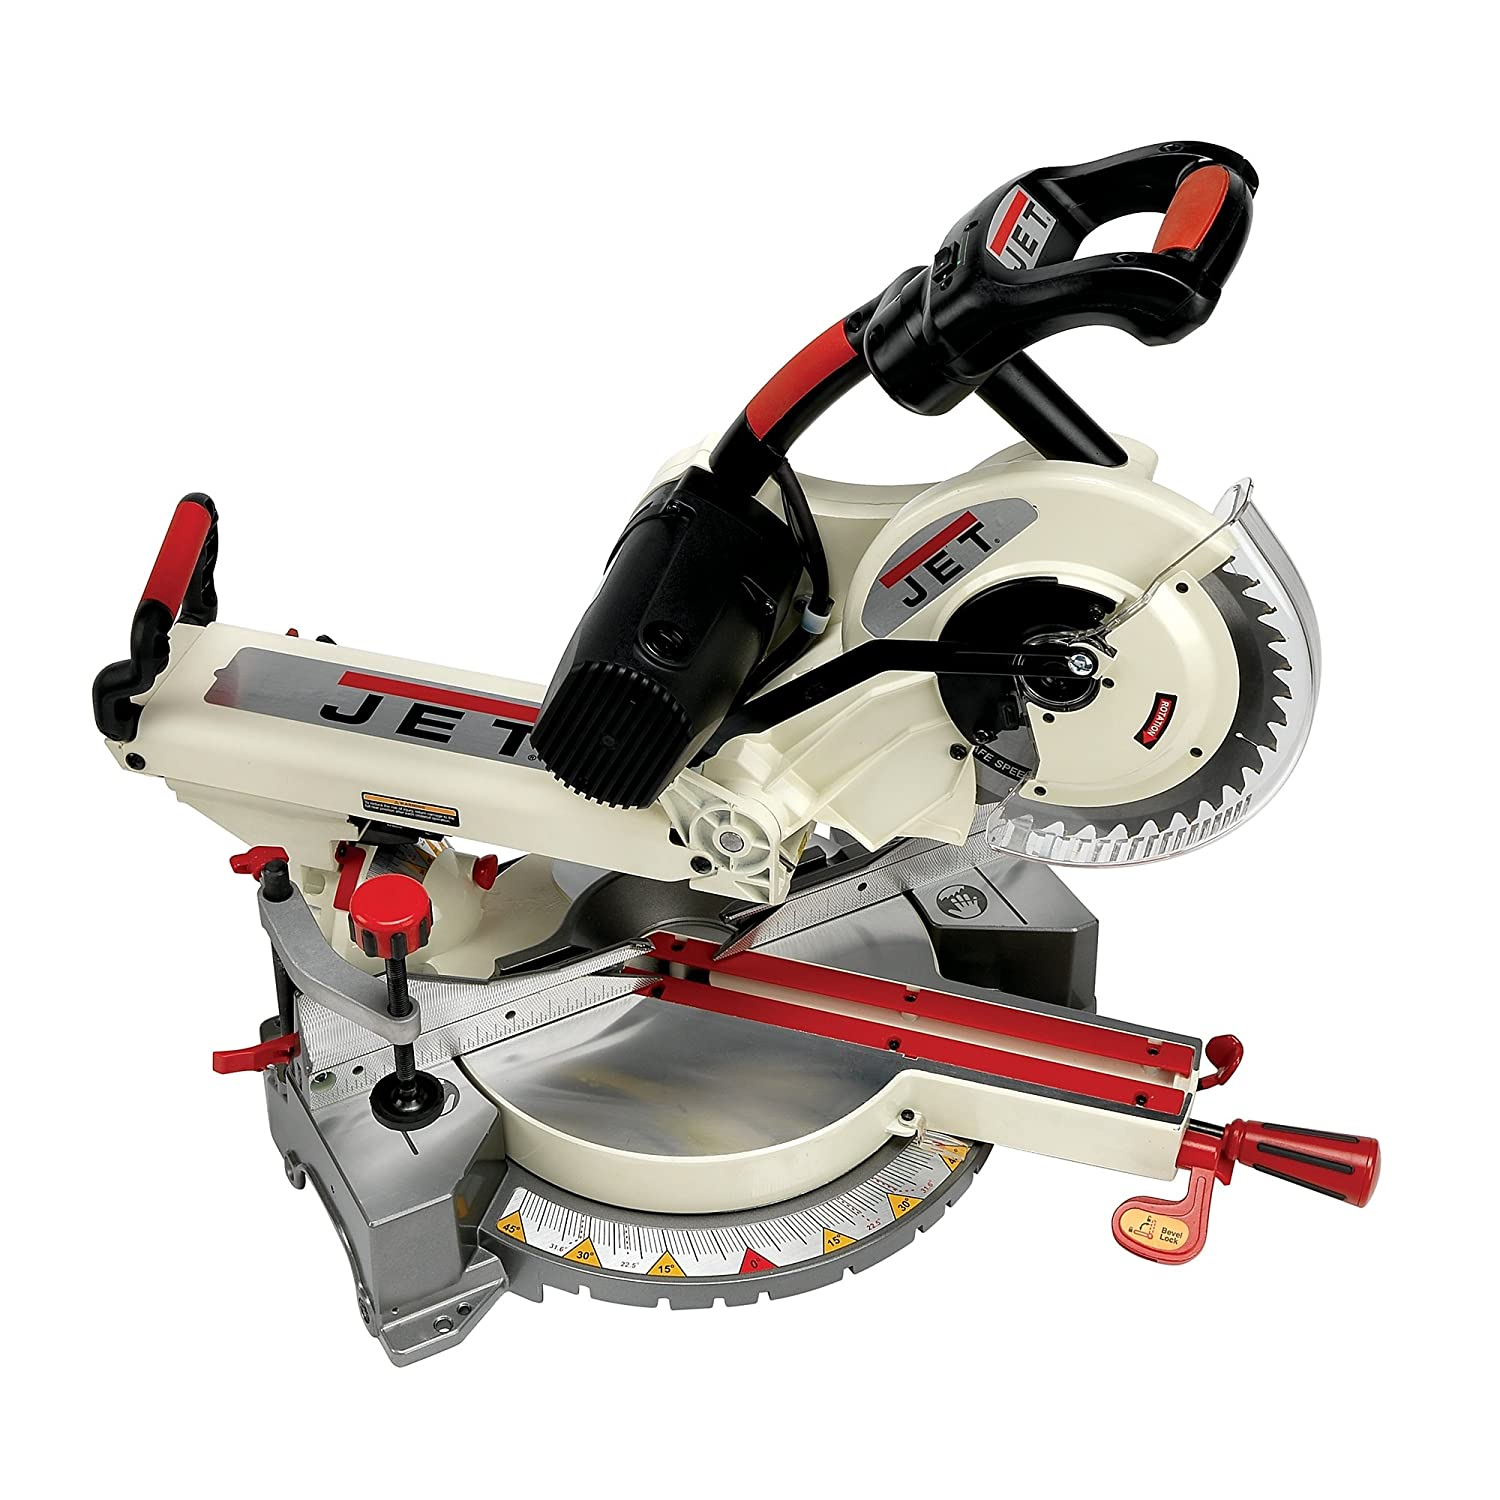 home depot miter saw. jet jms-10scms 10-inch dual-bevel slide compound miter saw - power saws amazon.com home depot